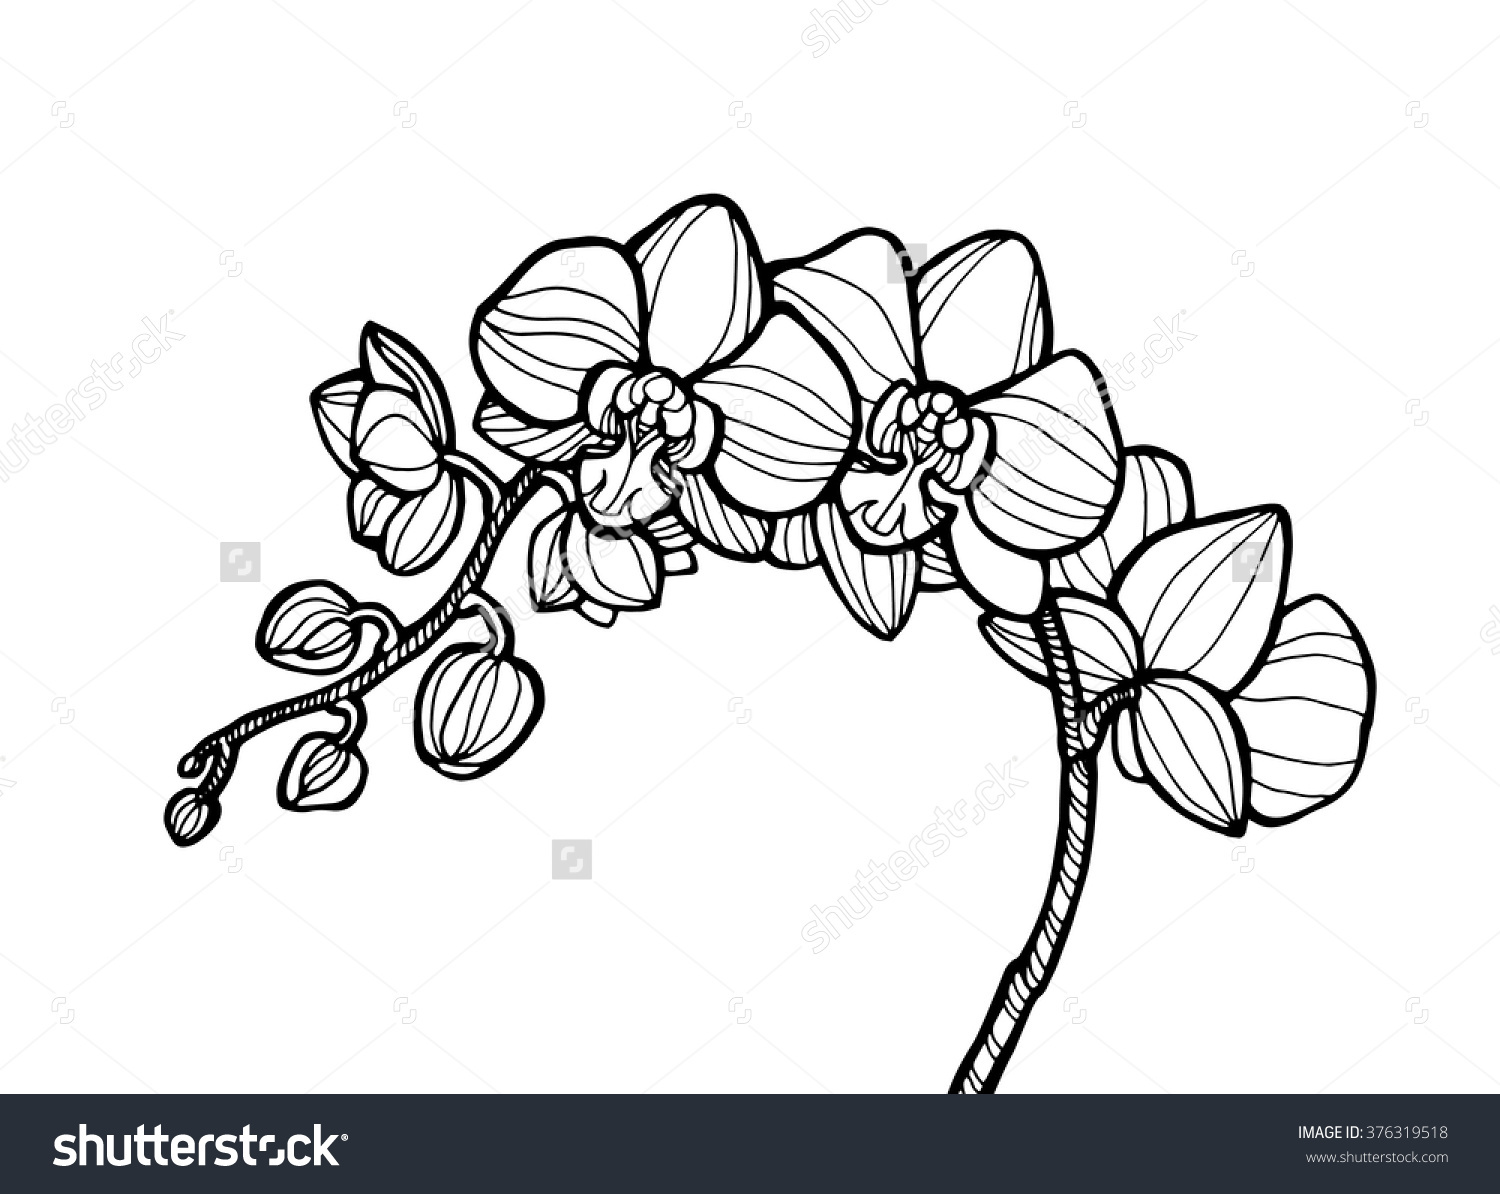 Free Printable Orchid Coloring Pages - Diannedonnelly.com